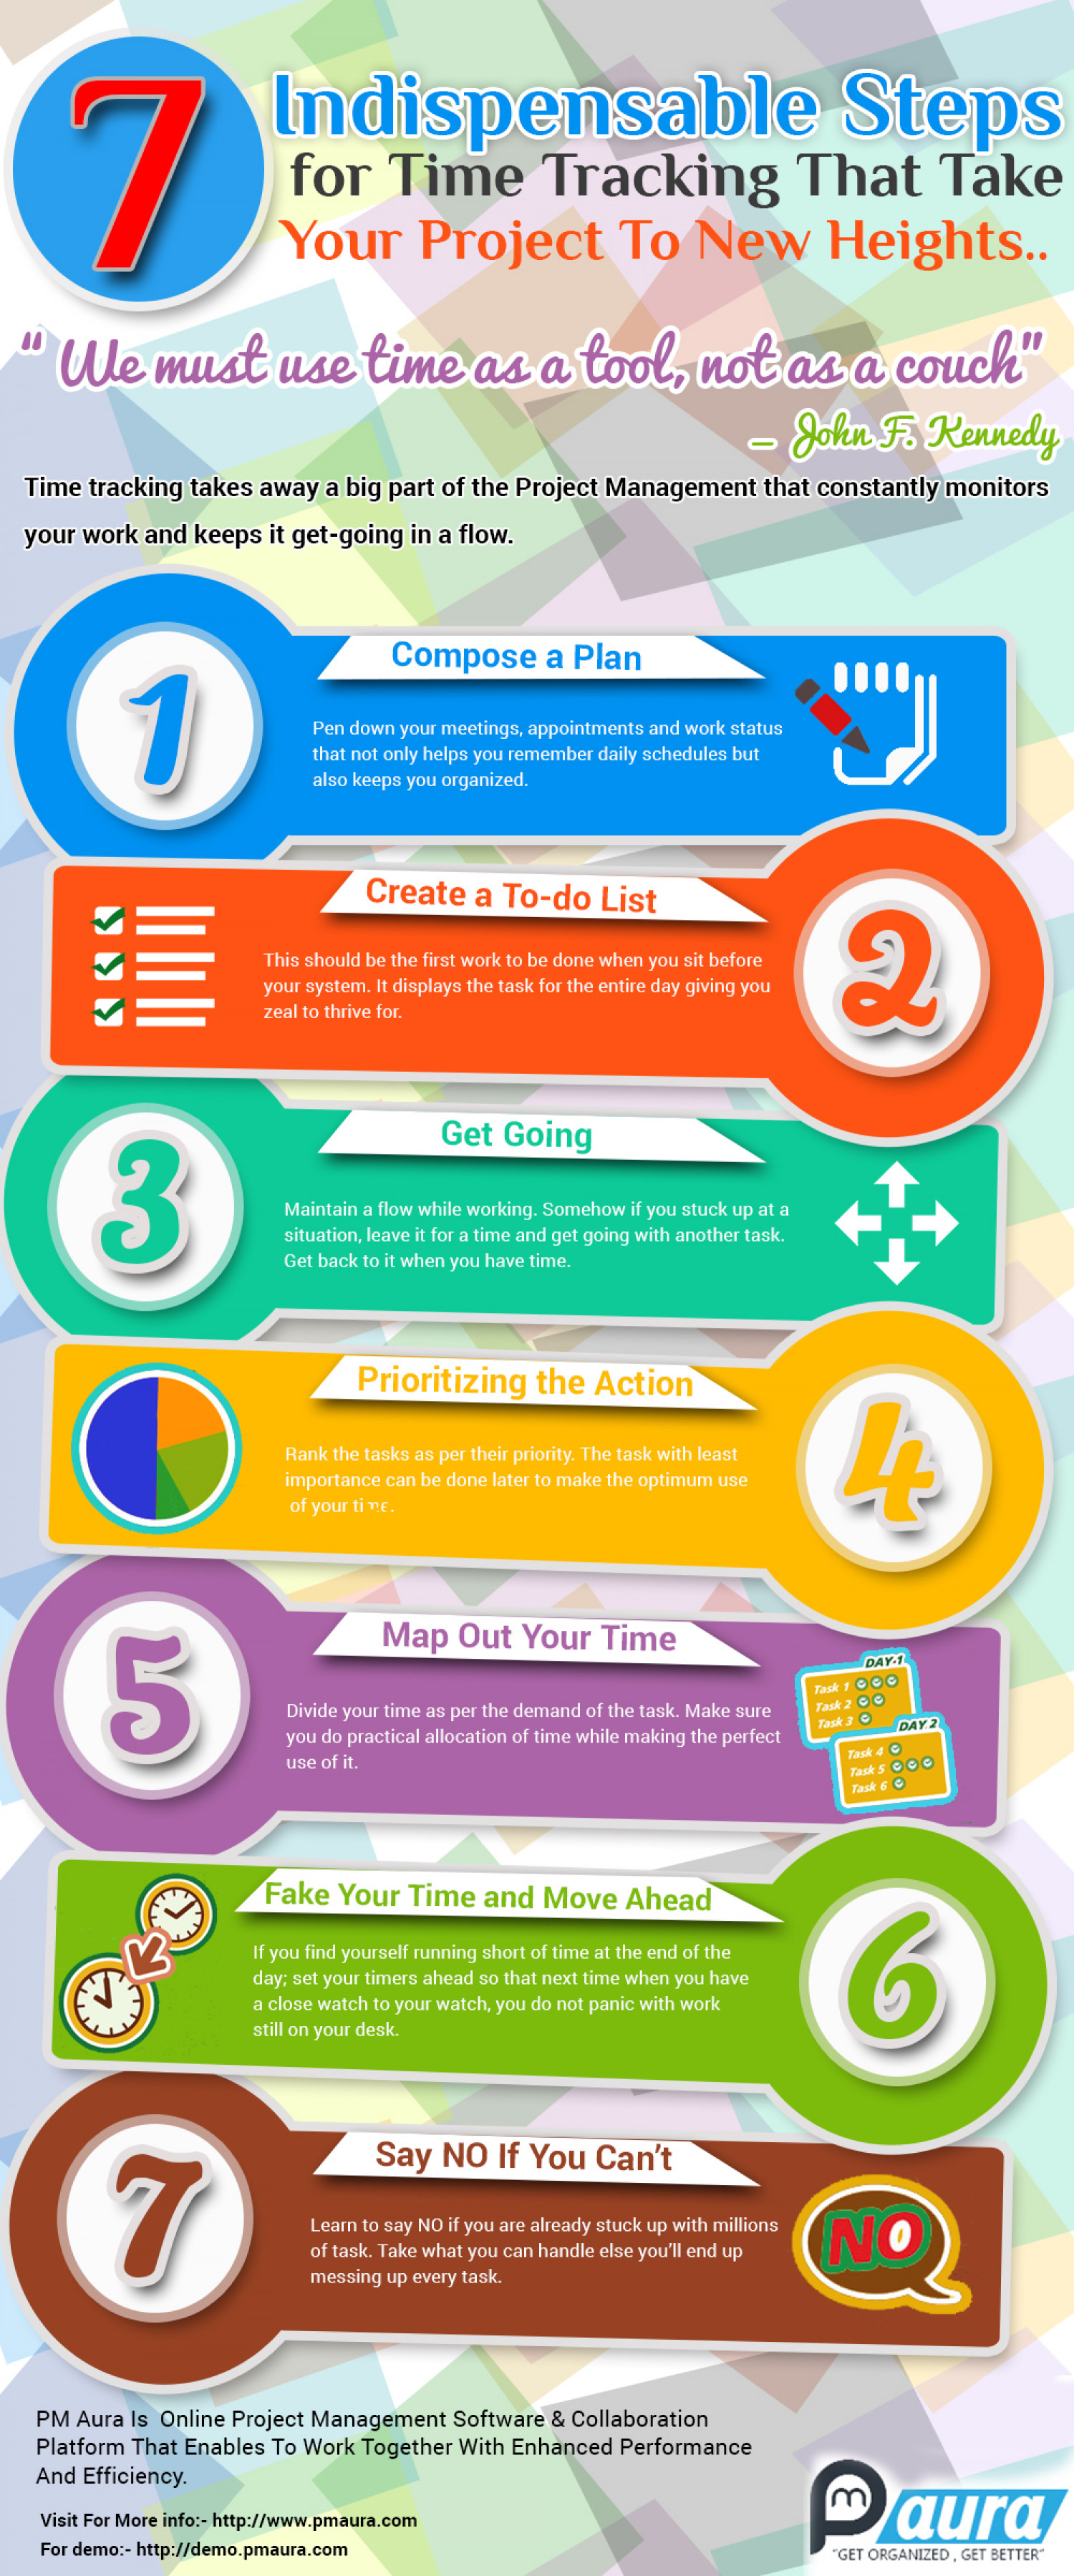 7 Indispensable Steps for Time Tracking That Take Your Project to New Heights Infographic